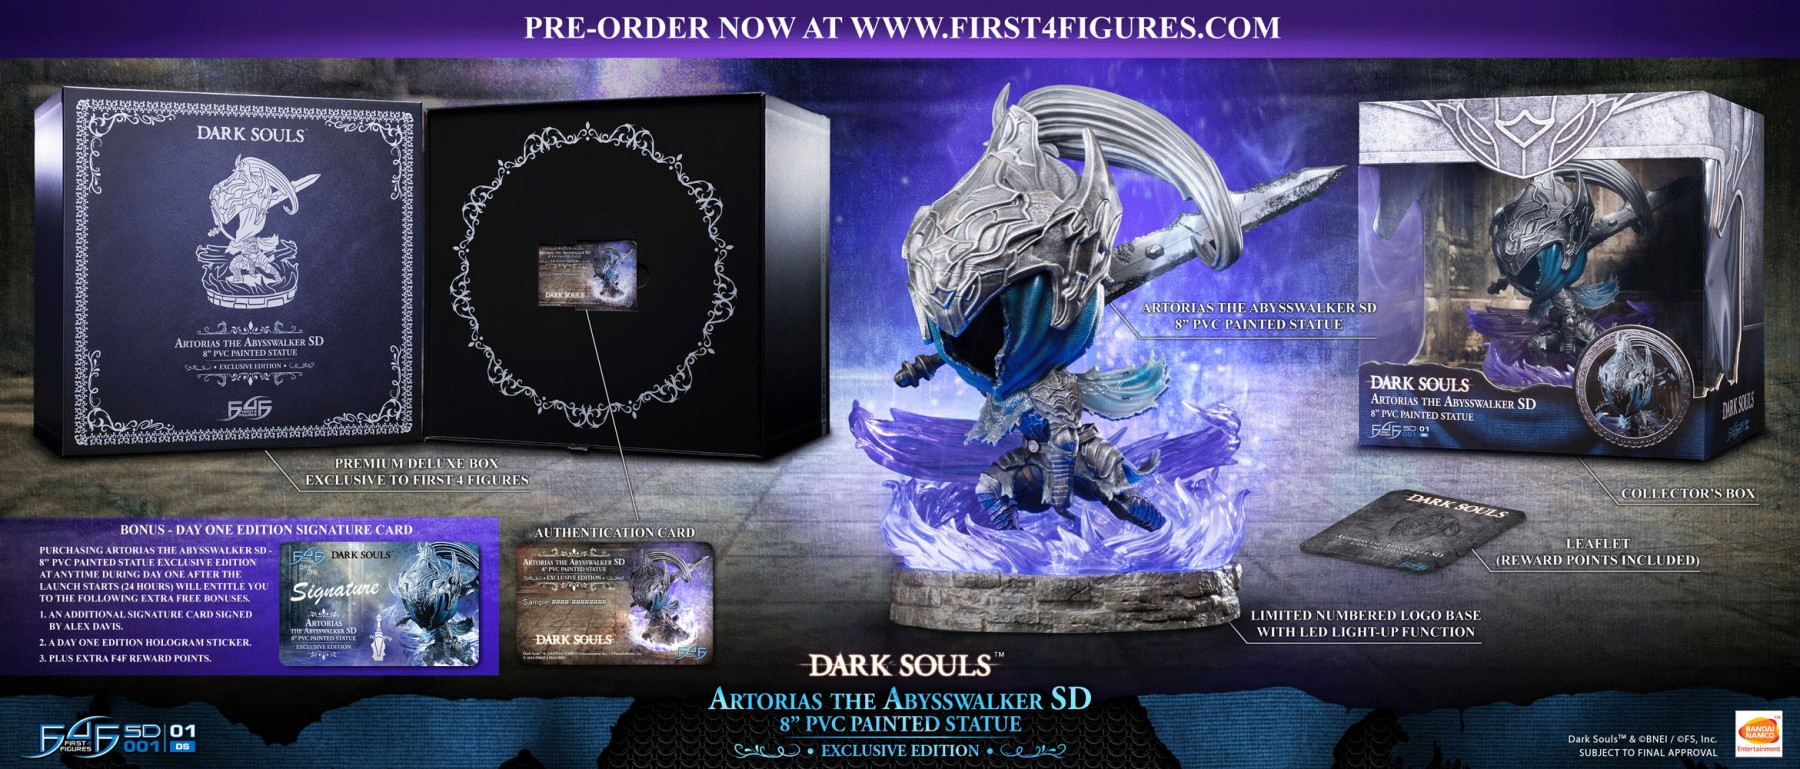 Artorias the Abysswalker SD (Exclusive) Set